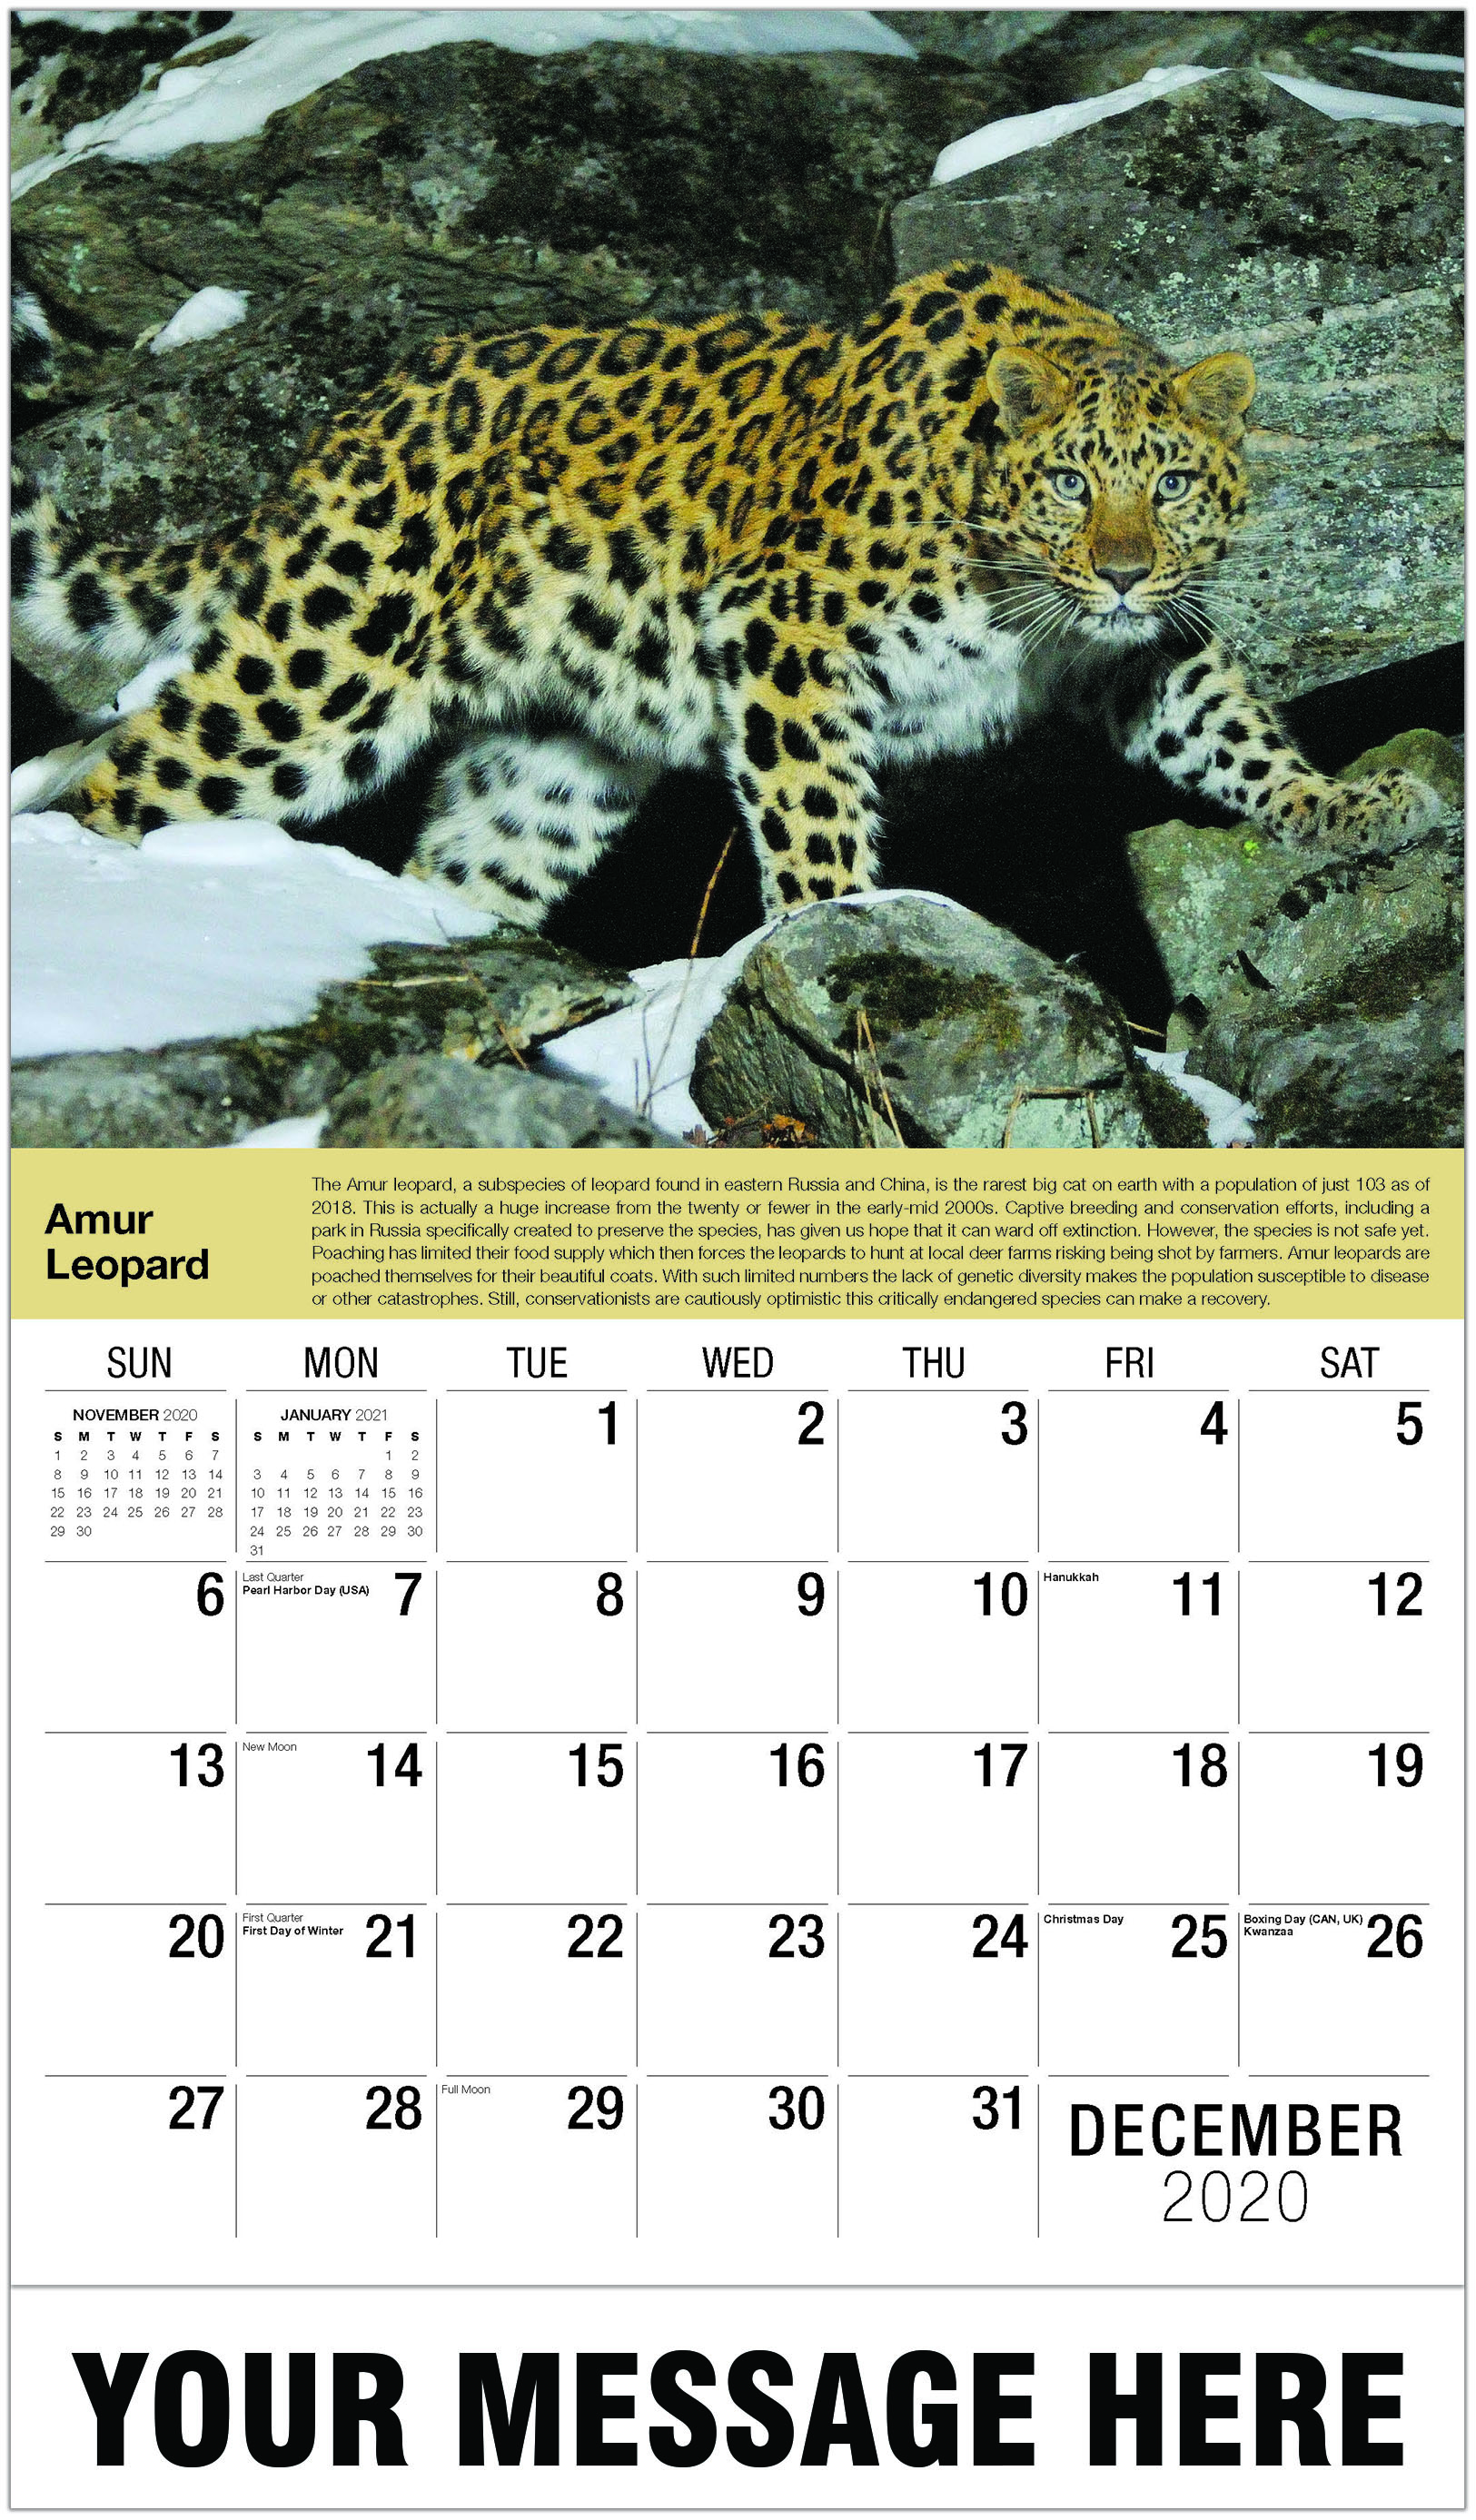 Amur Leopard - December 2020 - International Wildlife 2021 Promotional Calendar